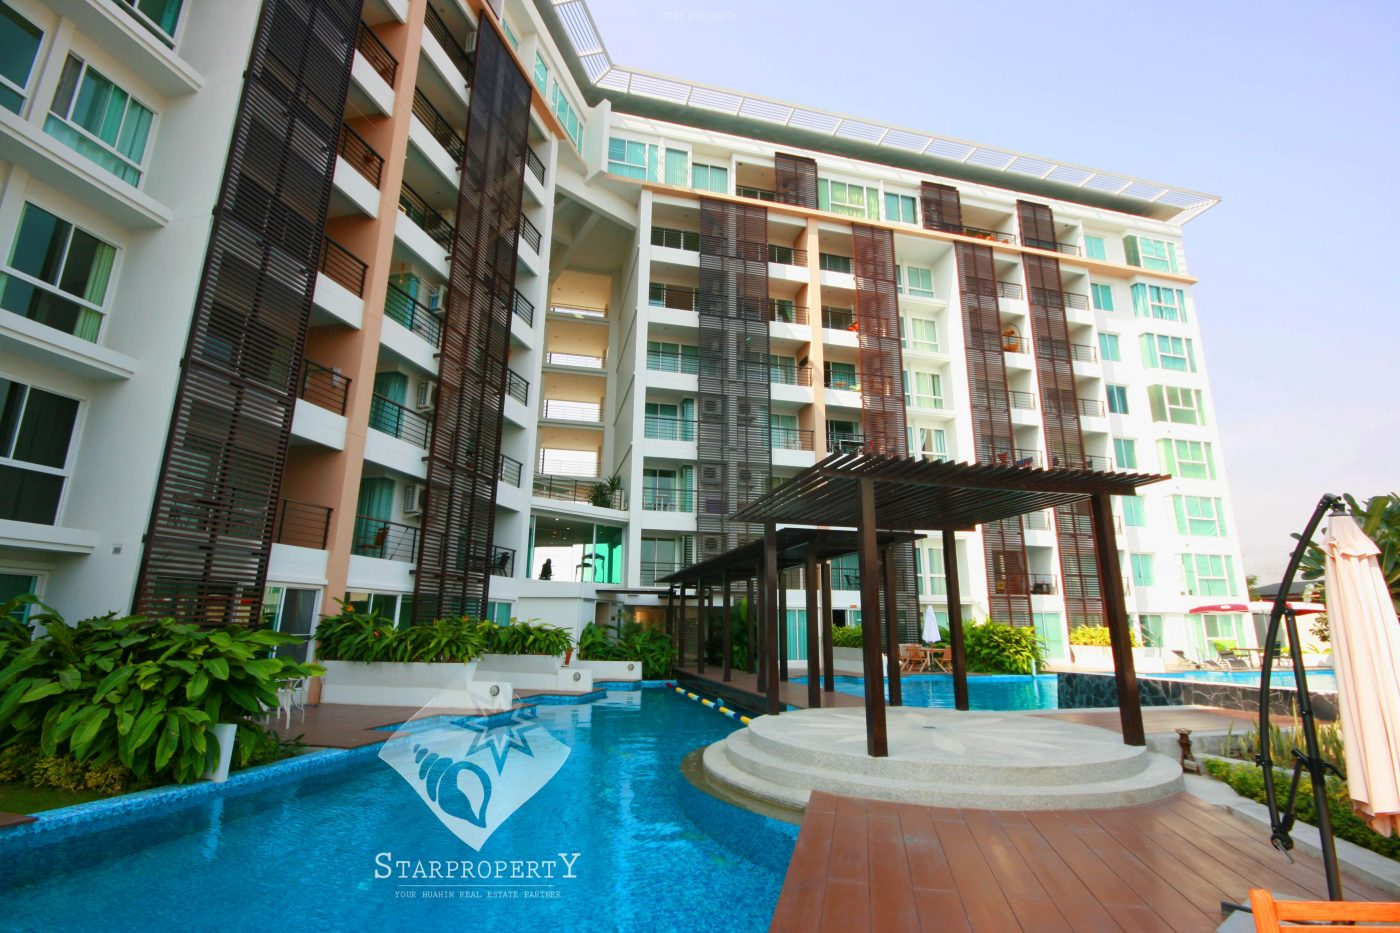 Condominium for Rent in Hua Hin town at Hua Hin